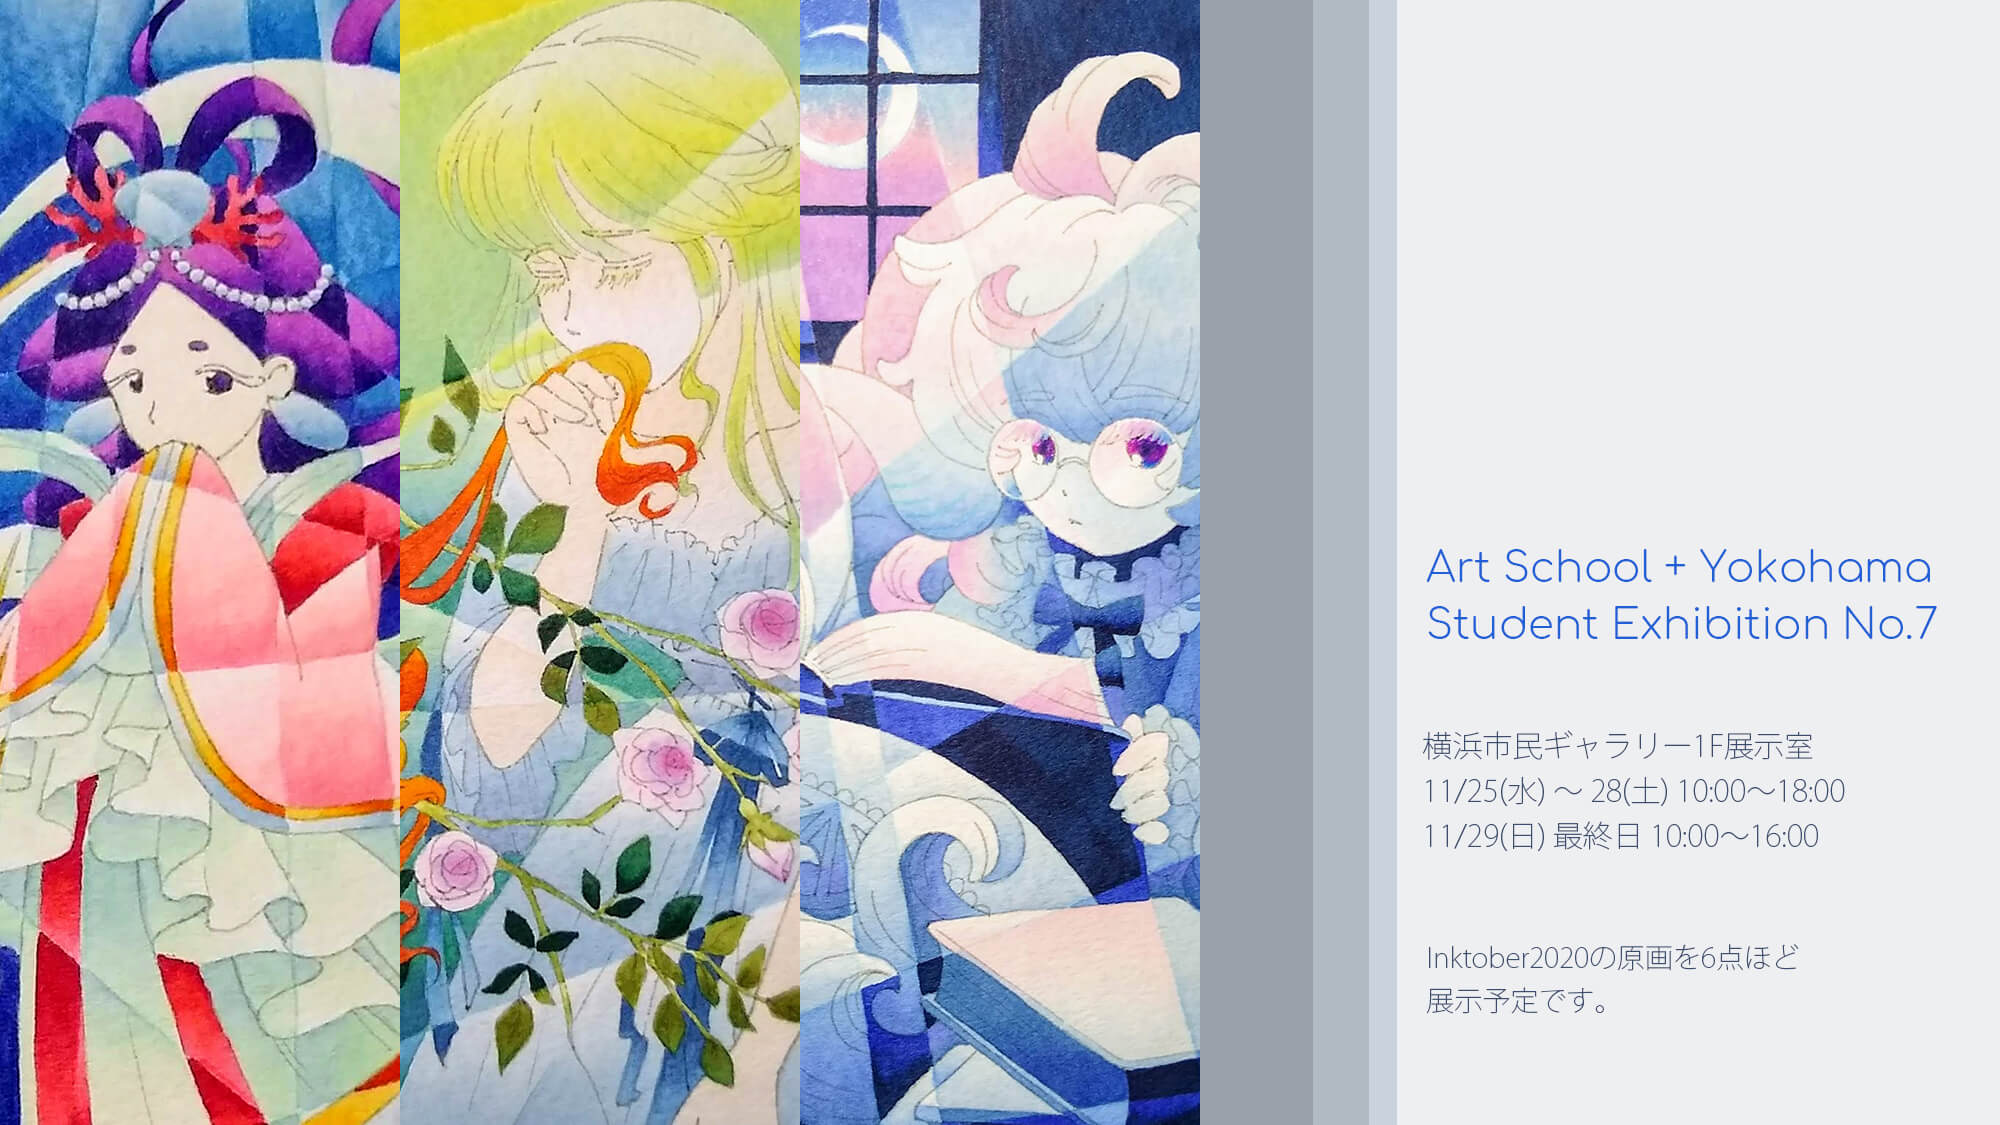 Art School+Yokohama Student Exhibition. No,7 出展のお知らせ